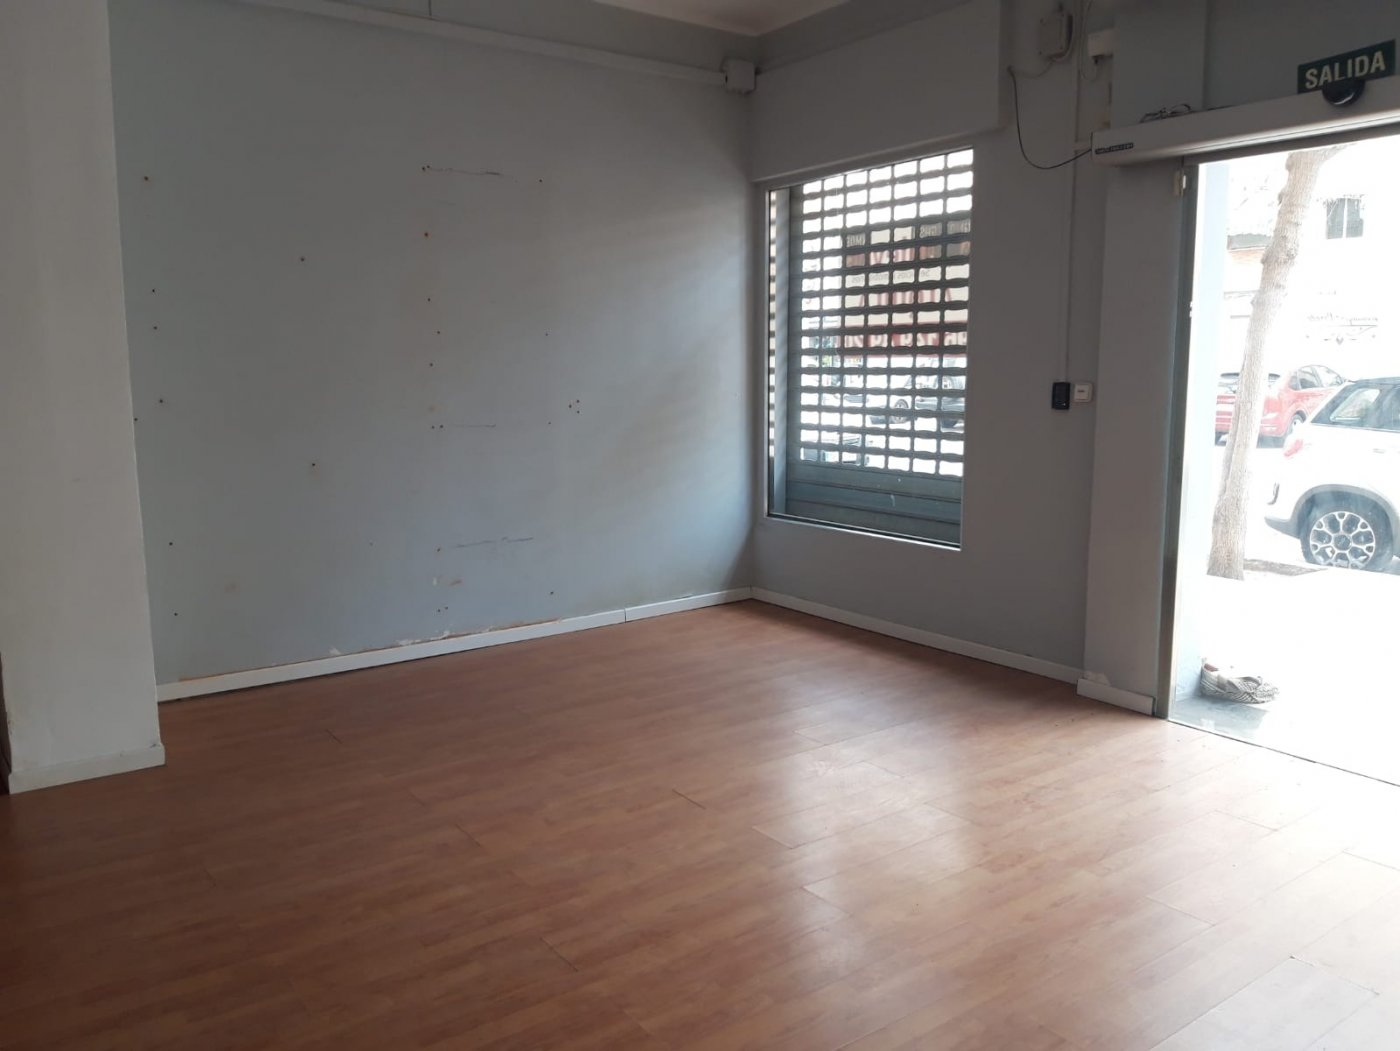 local-comercial en meliana · centrico 350€